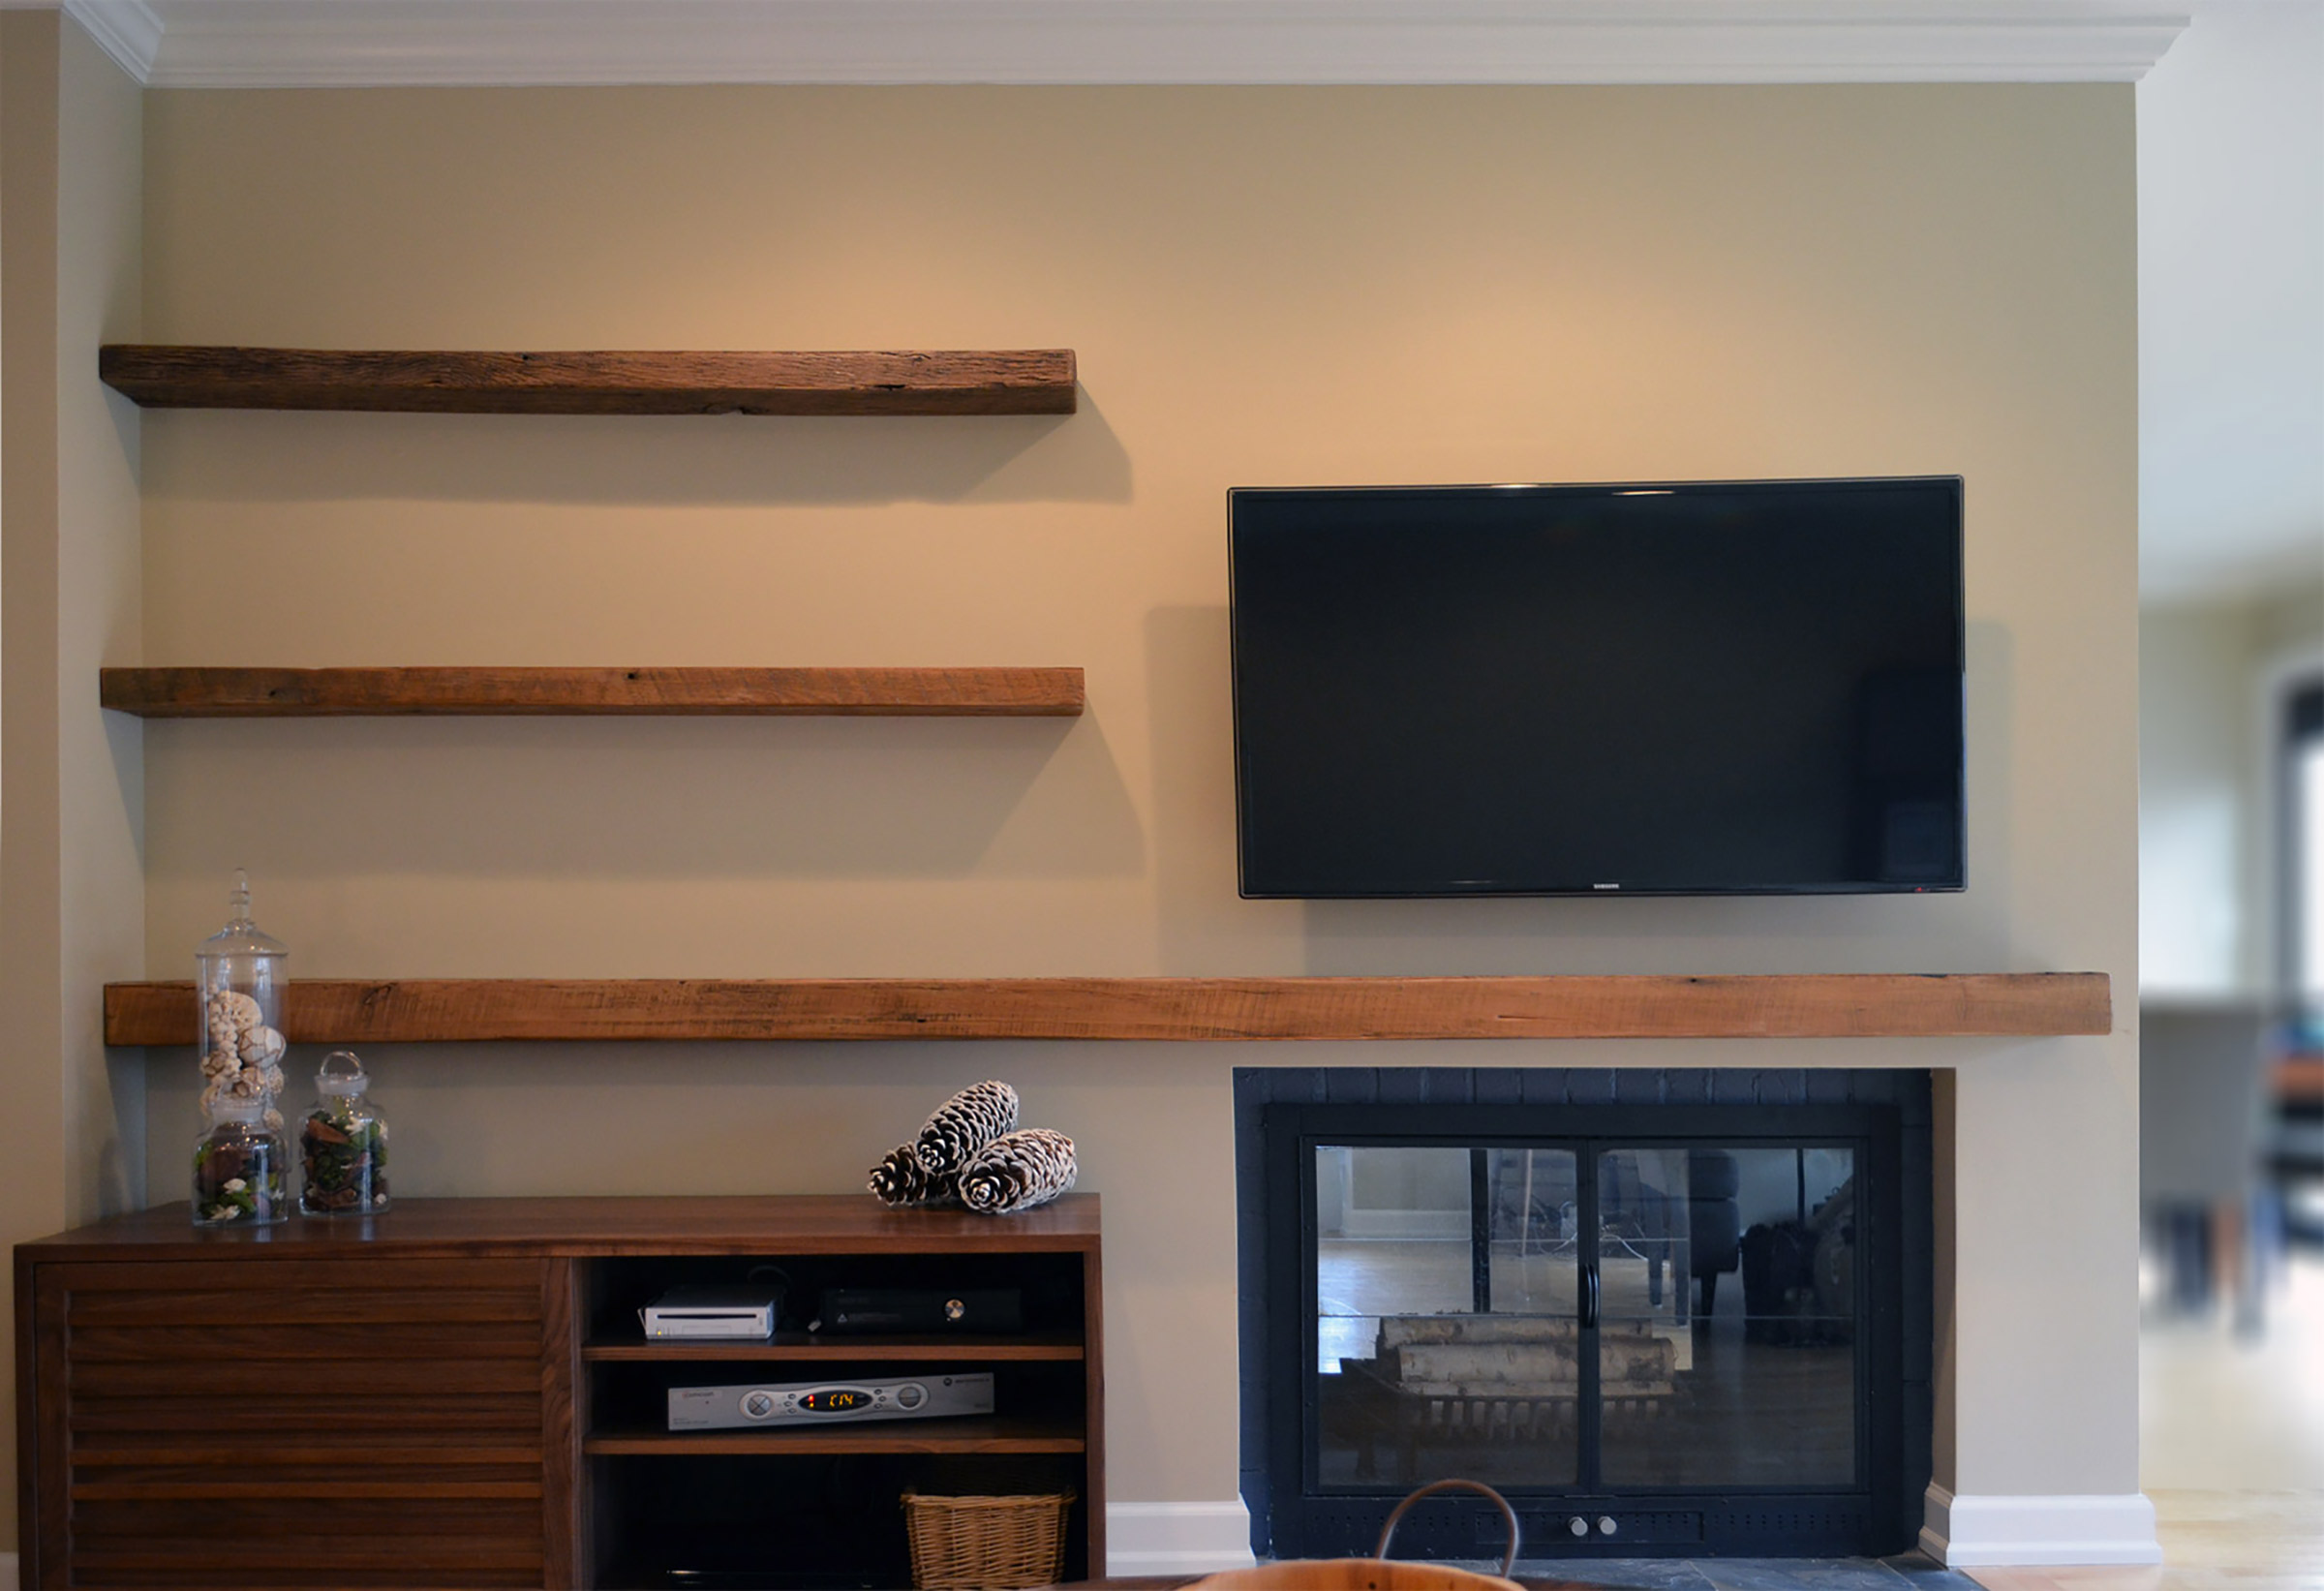 Reclaimed Media Cabinet Rustic Wood Floating Shelves Abodeacious